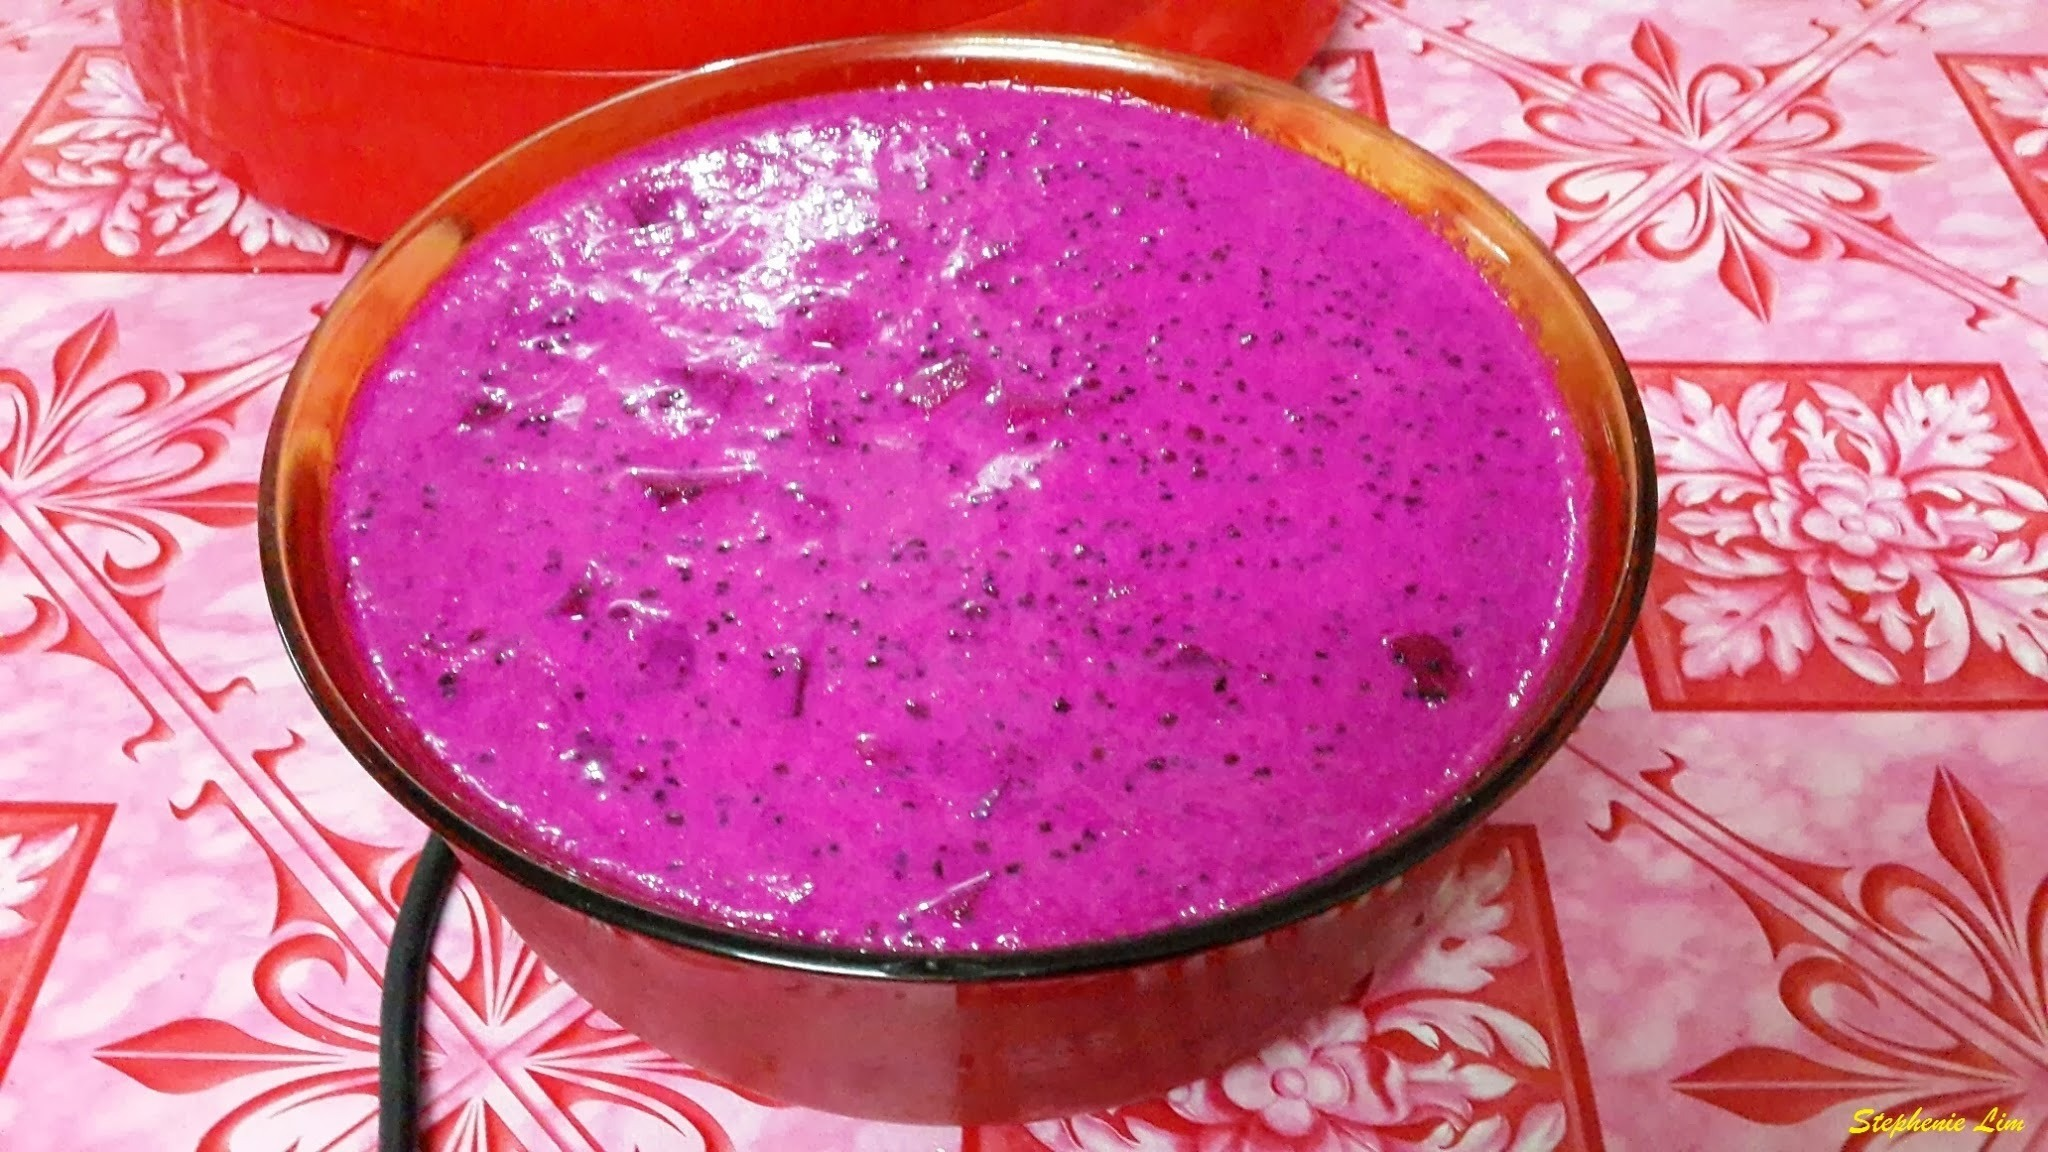 团圆火龙果西米露 (Dragon Fruit Sago Dessert)